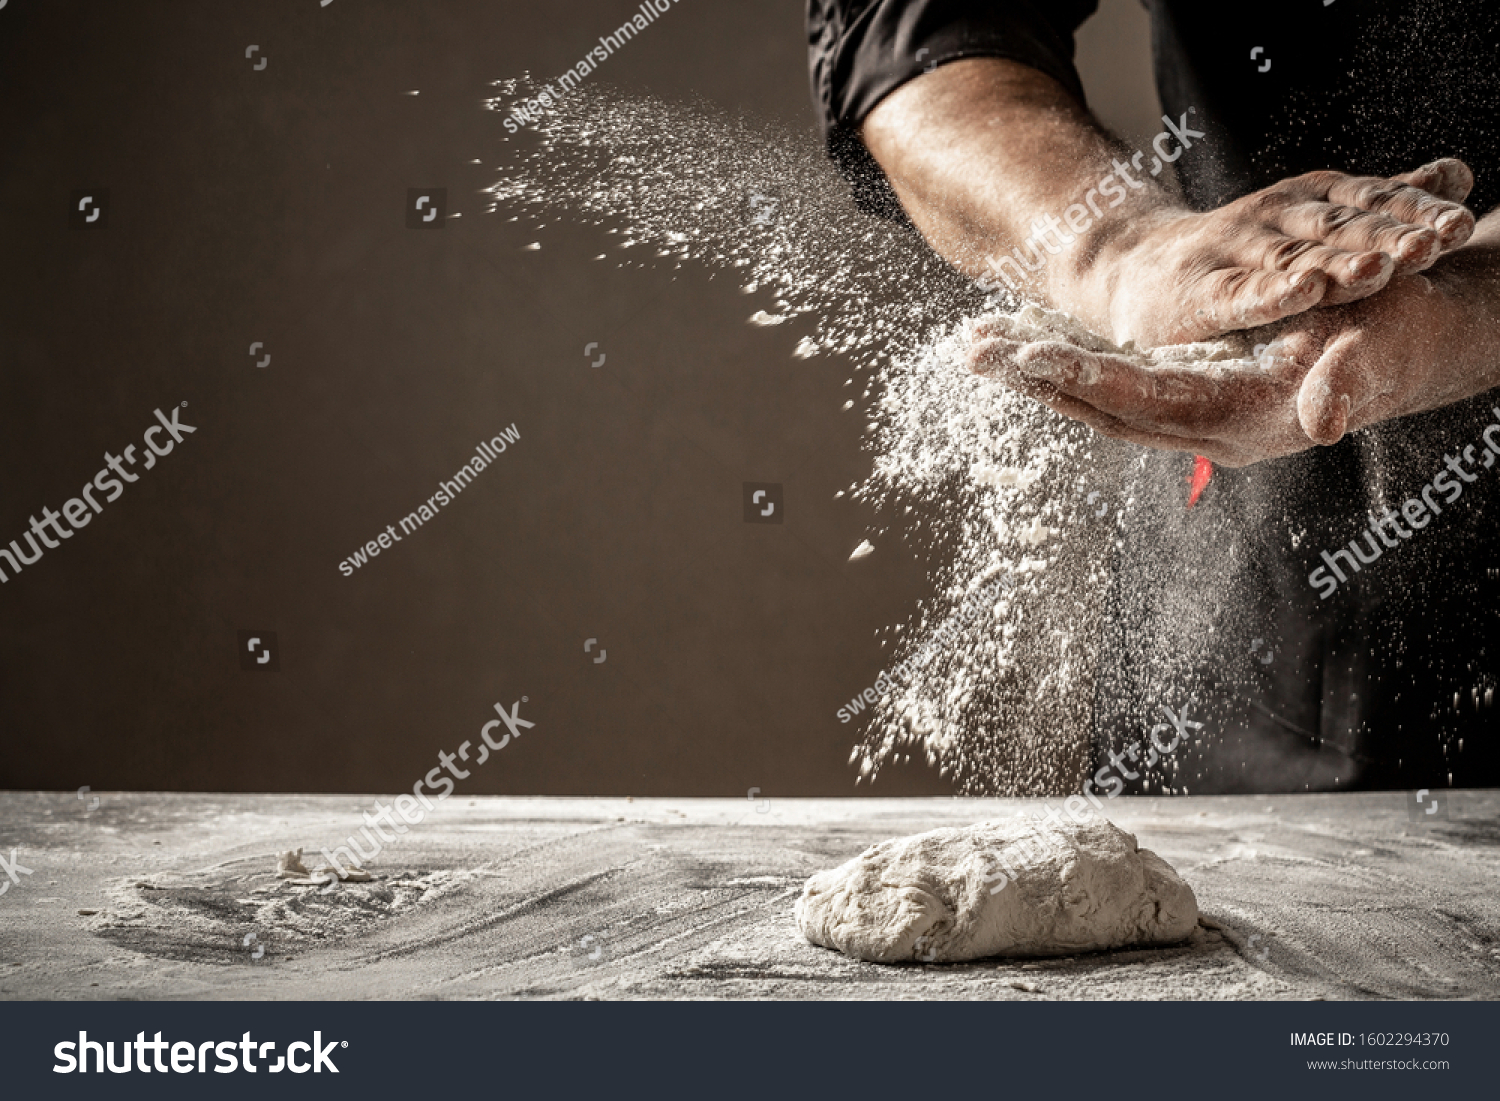 Photo of flour and men hands with flour splash. Cooking bread. Kneading the Dough. #1602294370